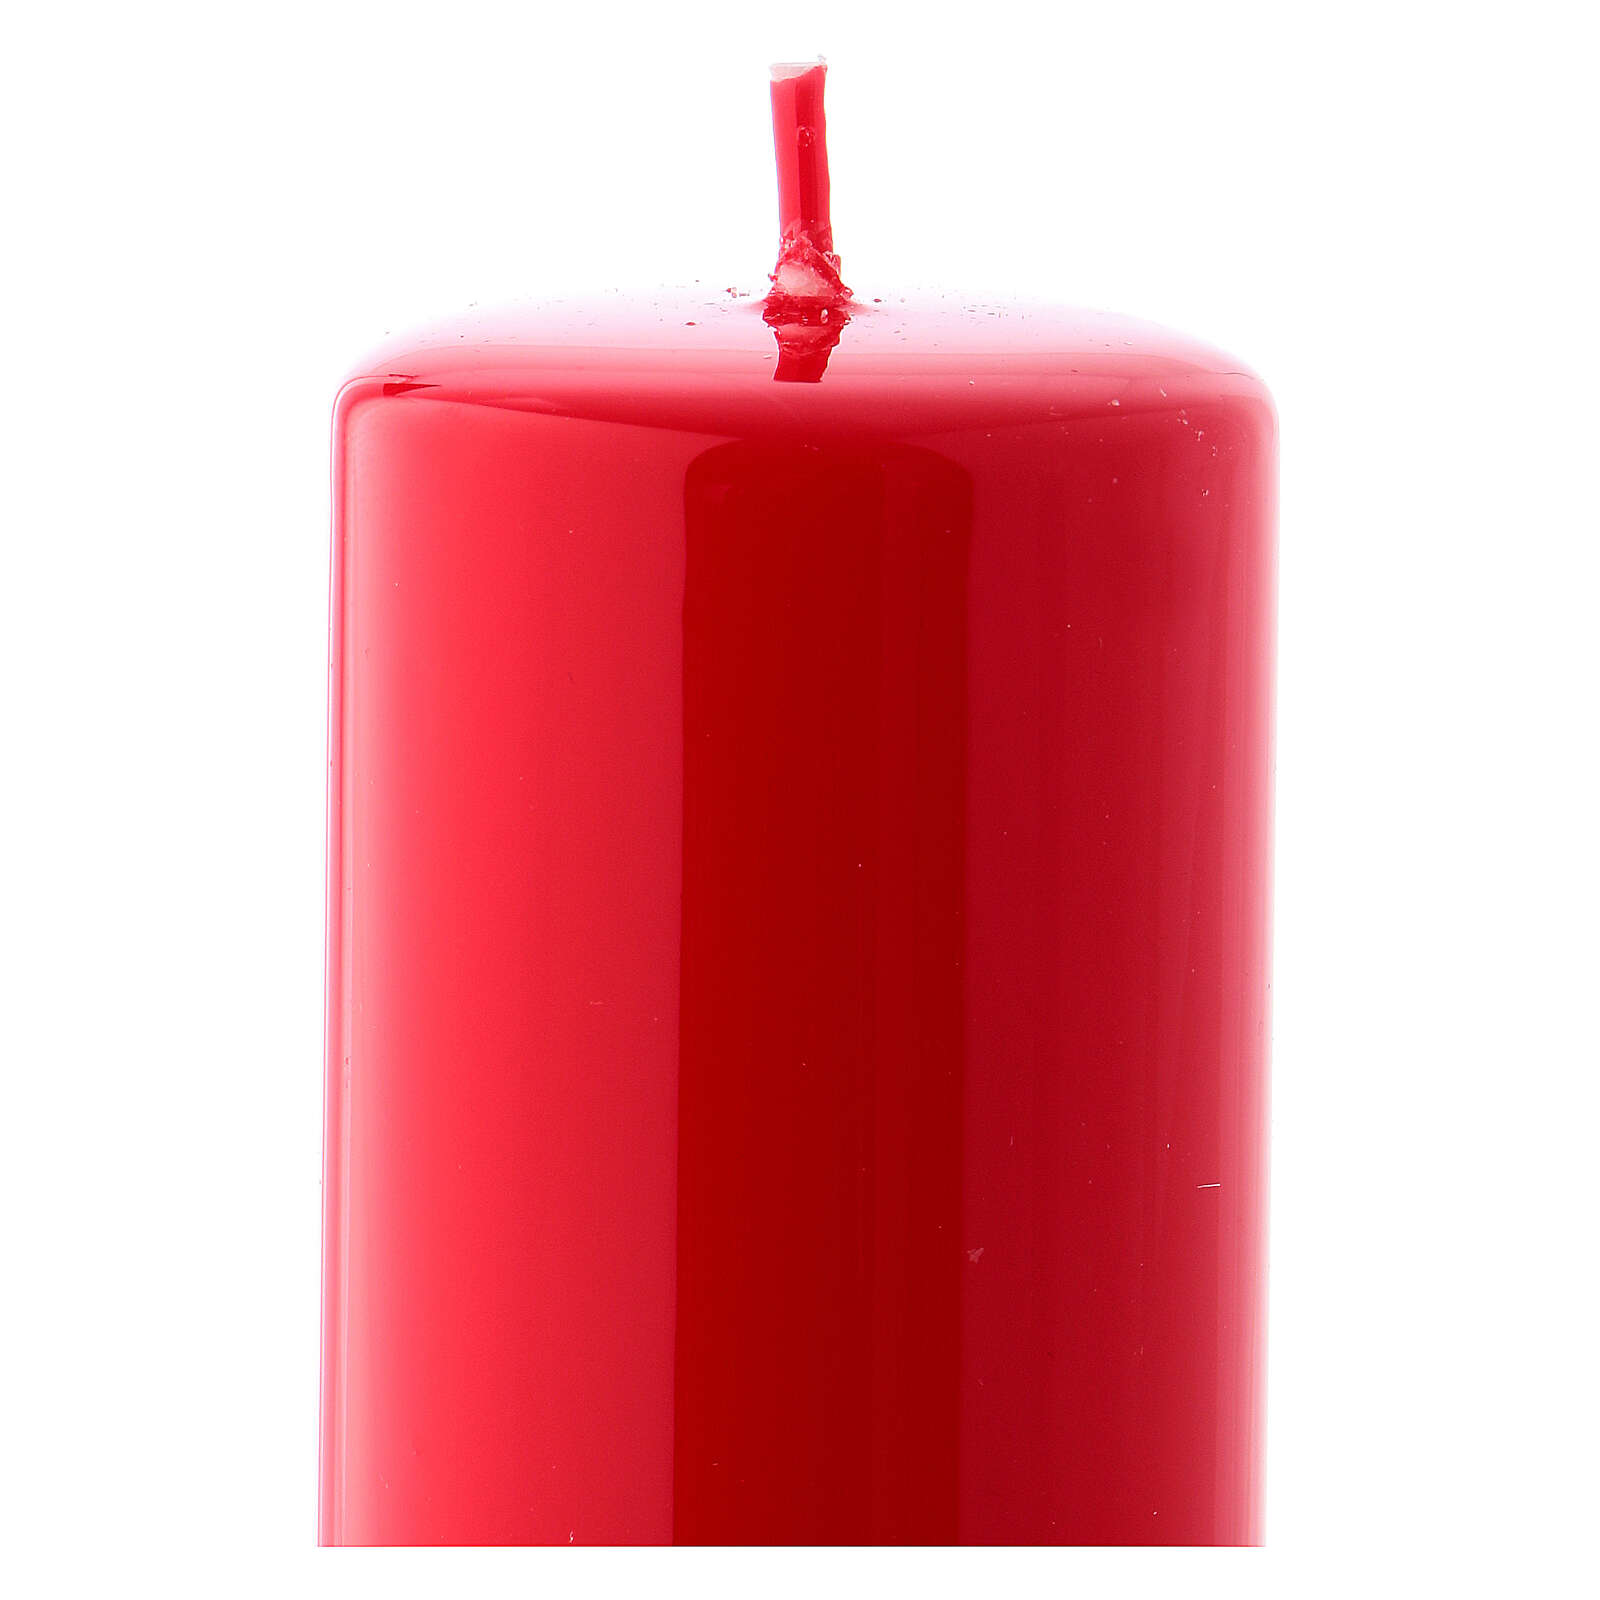 Shiny Red Pillar Candle Ceralacca, 5x13 cm 3